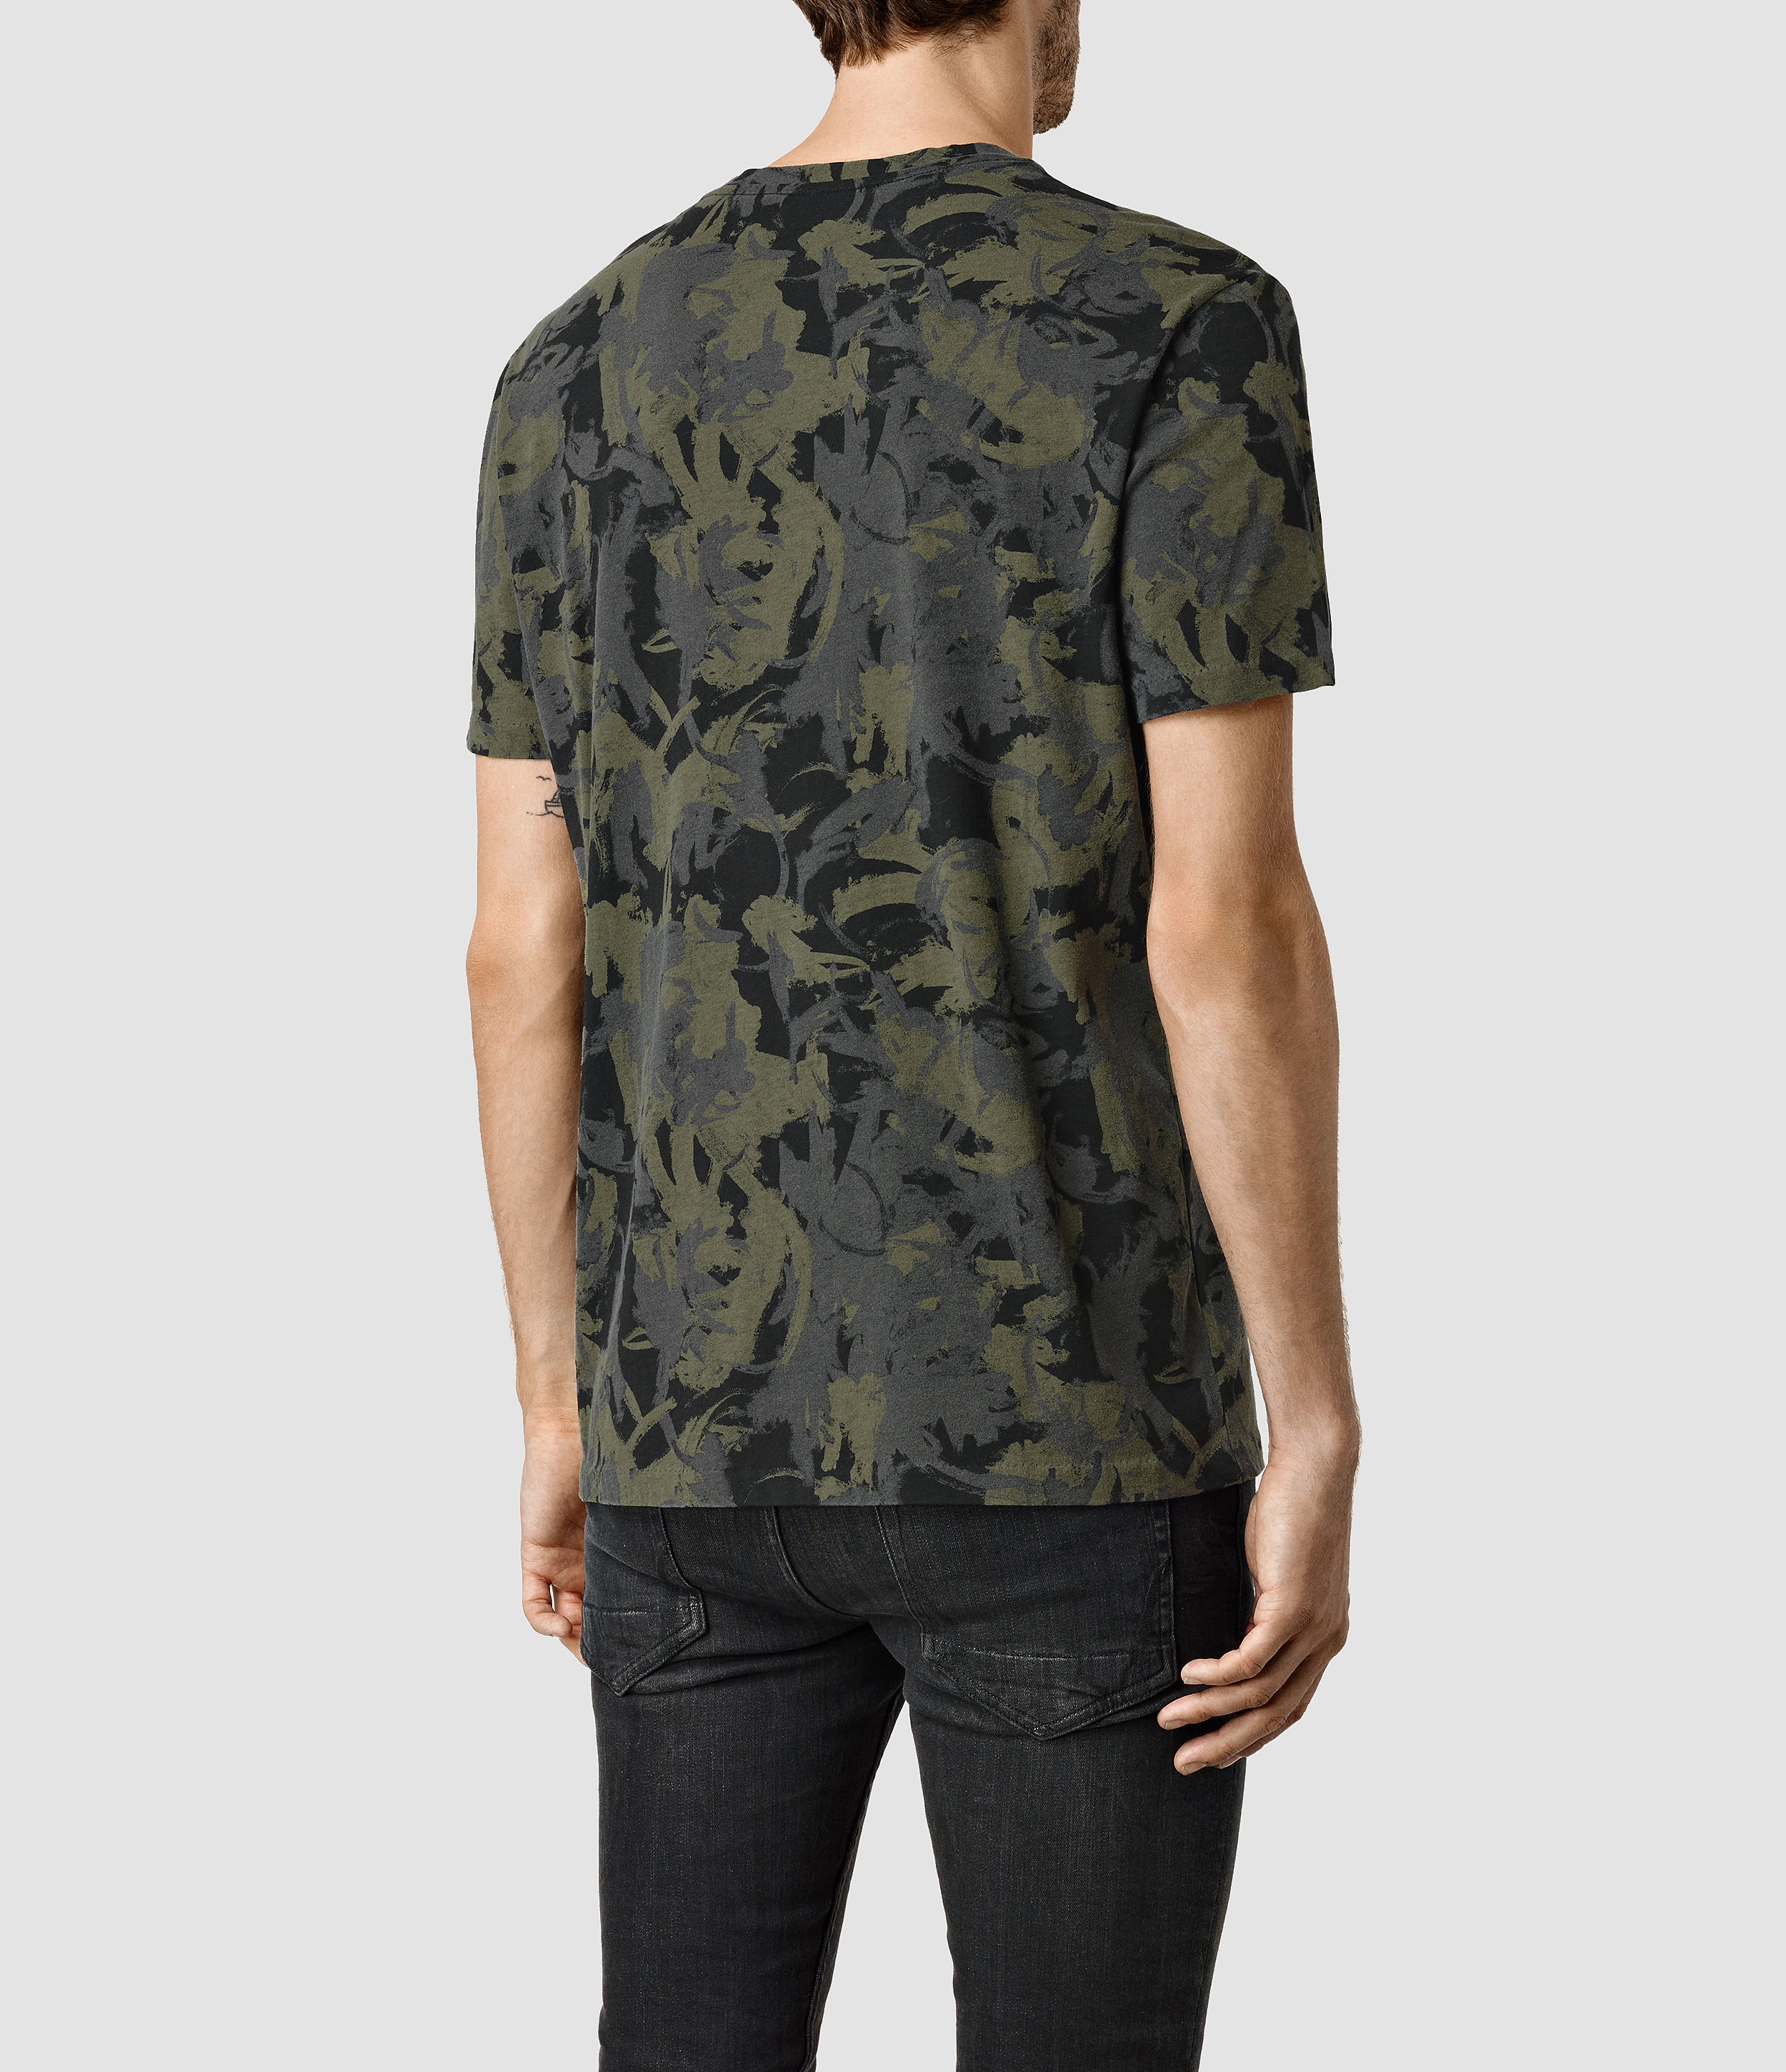 Lyst - AllSaints Painted Camo Crew T-shirt in Green for Men 33bf941c8